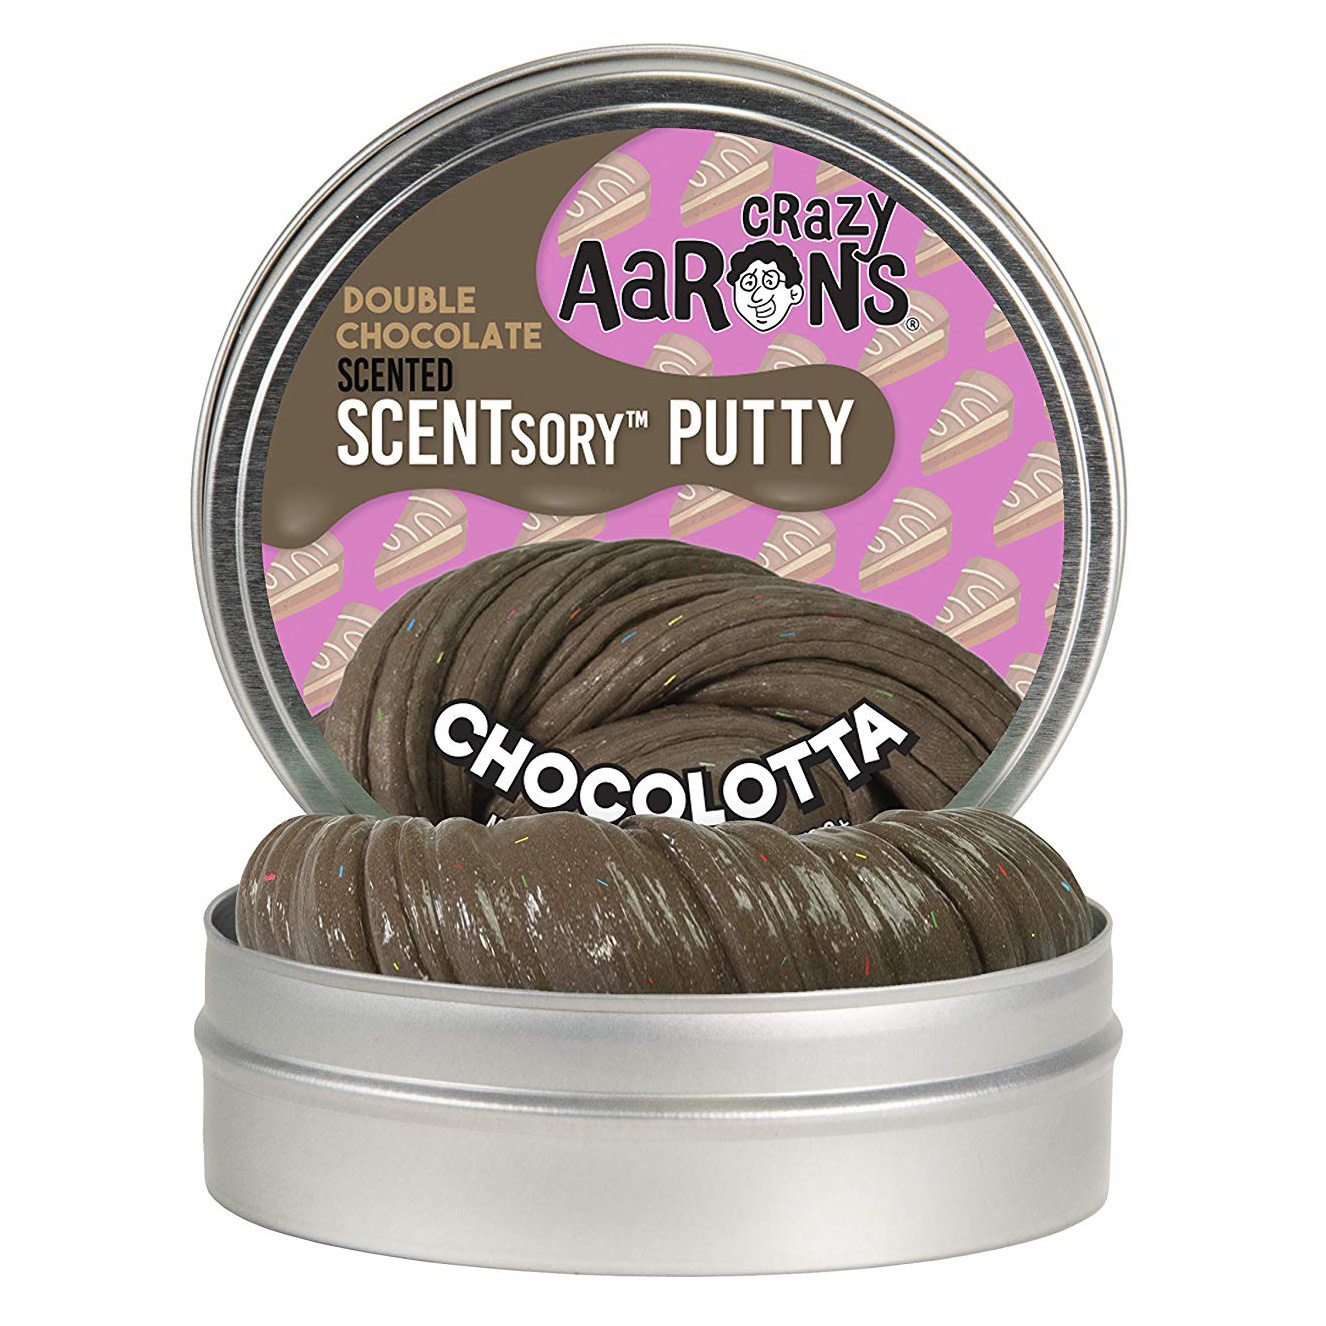 Crazy Aaron's Crazy Aaron's Thinking Putty SCENTSory Chocolotta 2.75""